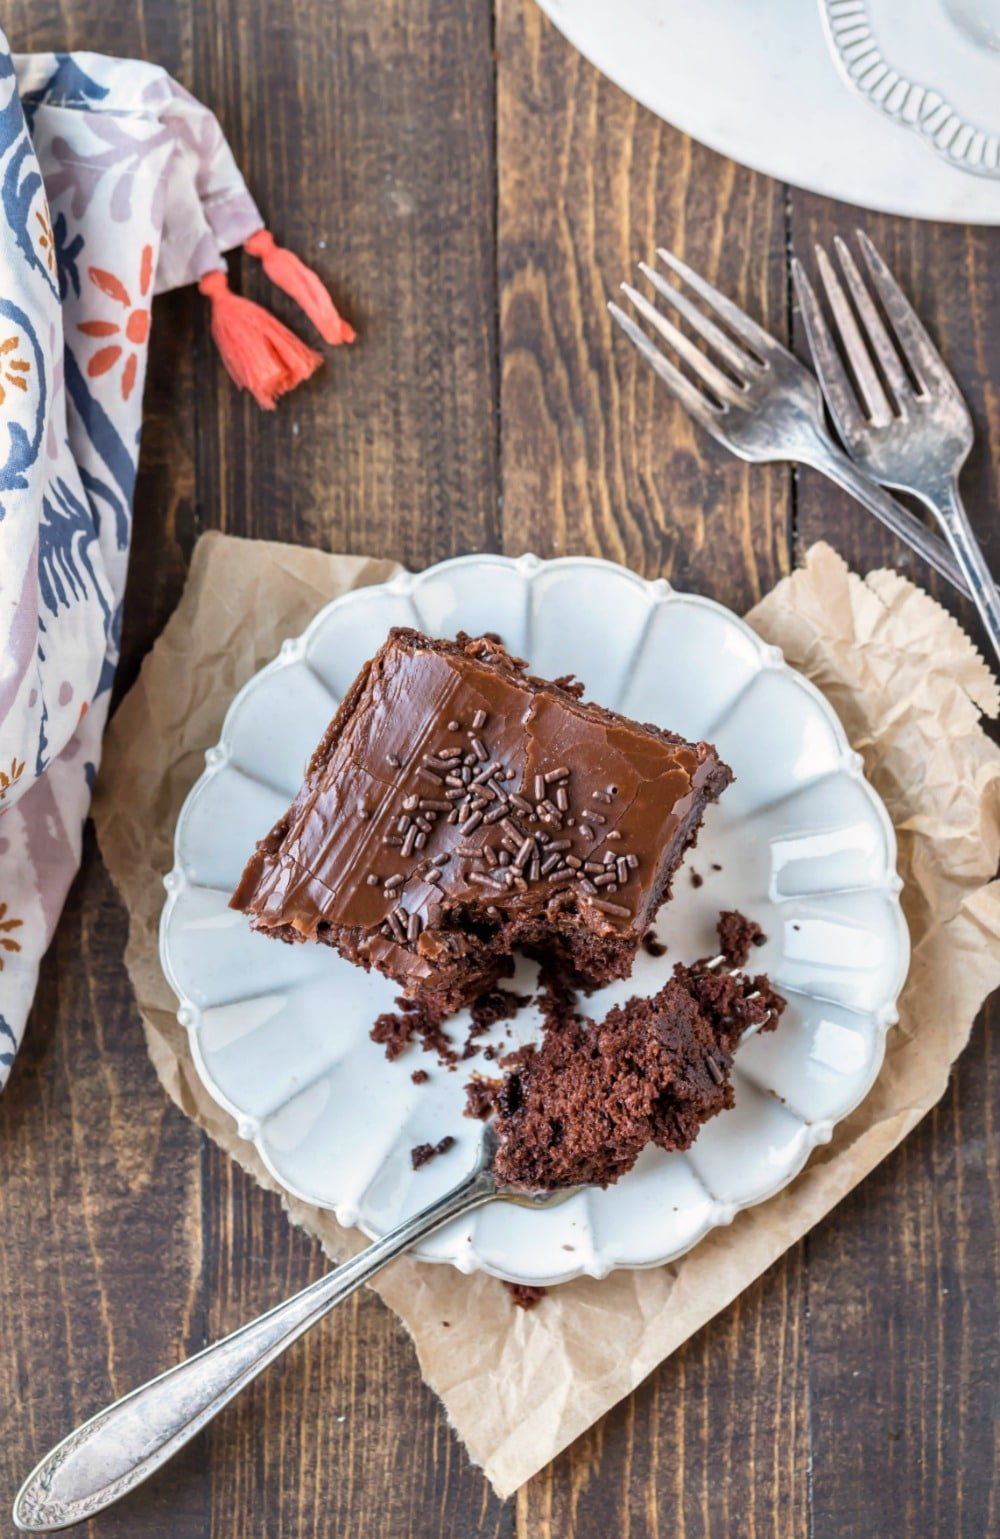 Slice of chocolate mayonnaise cake on a cream plate with a silver fork